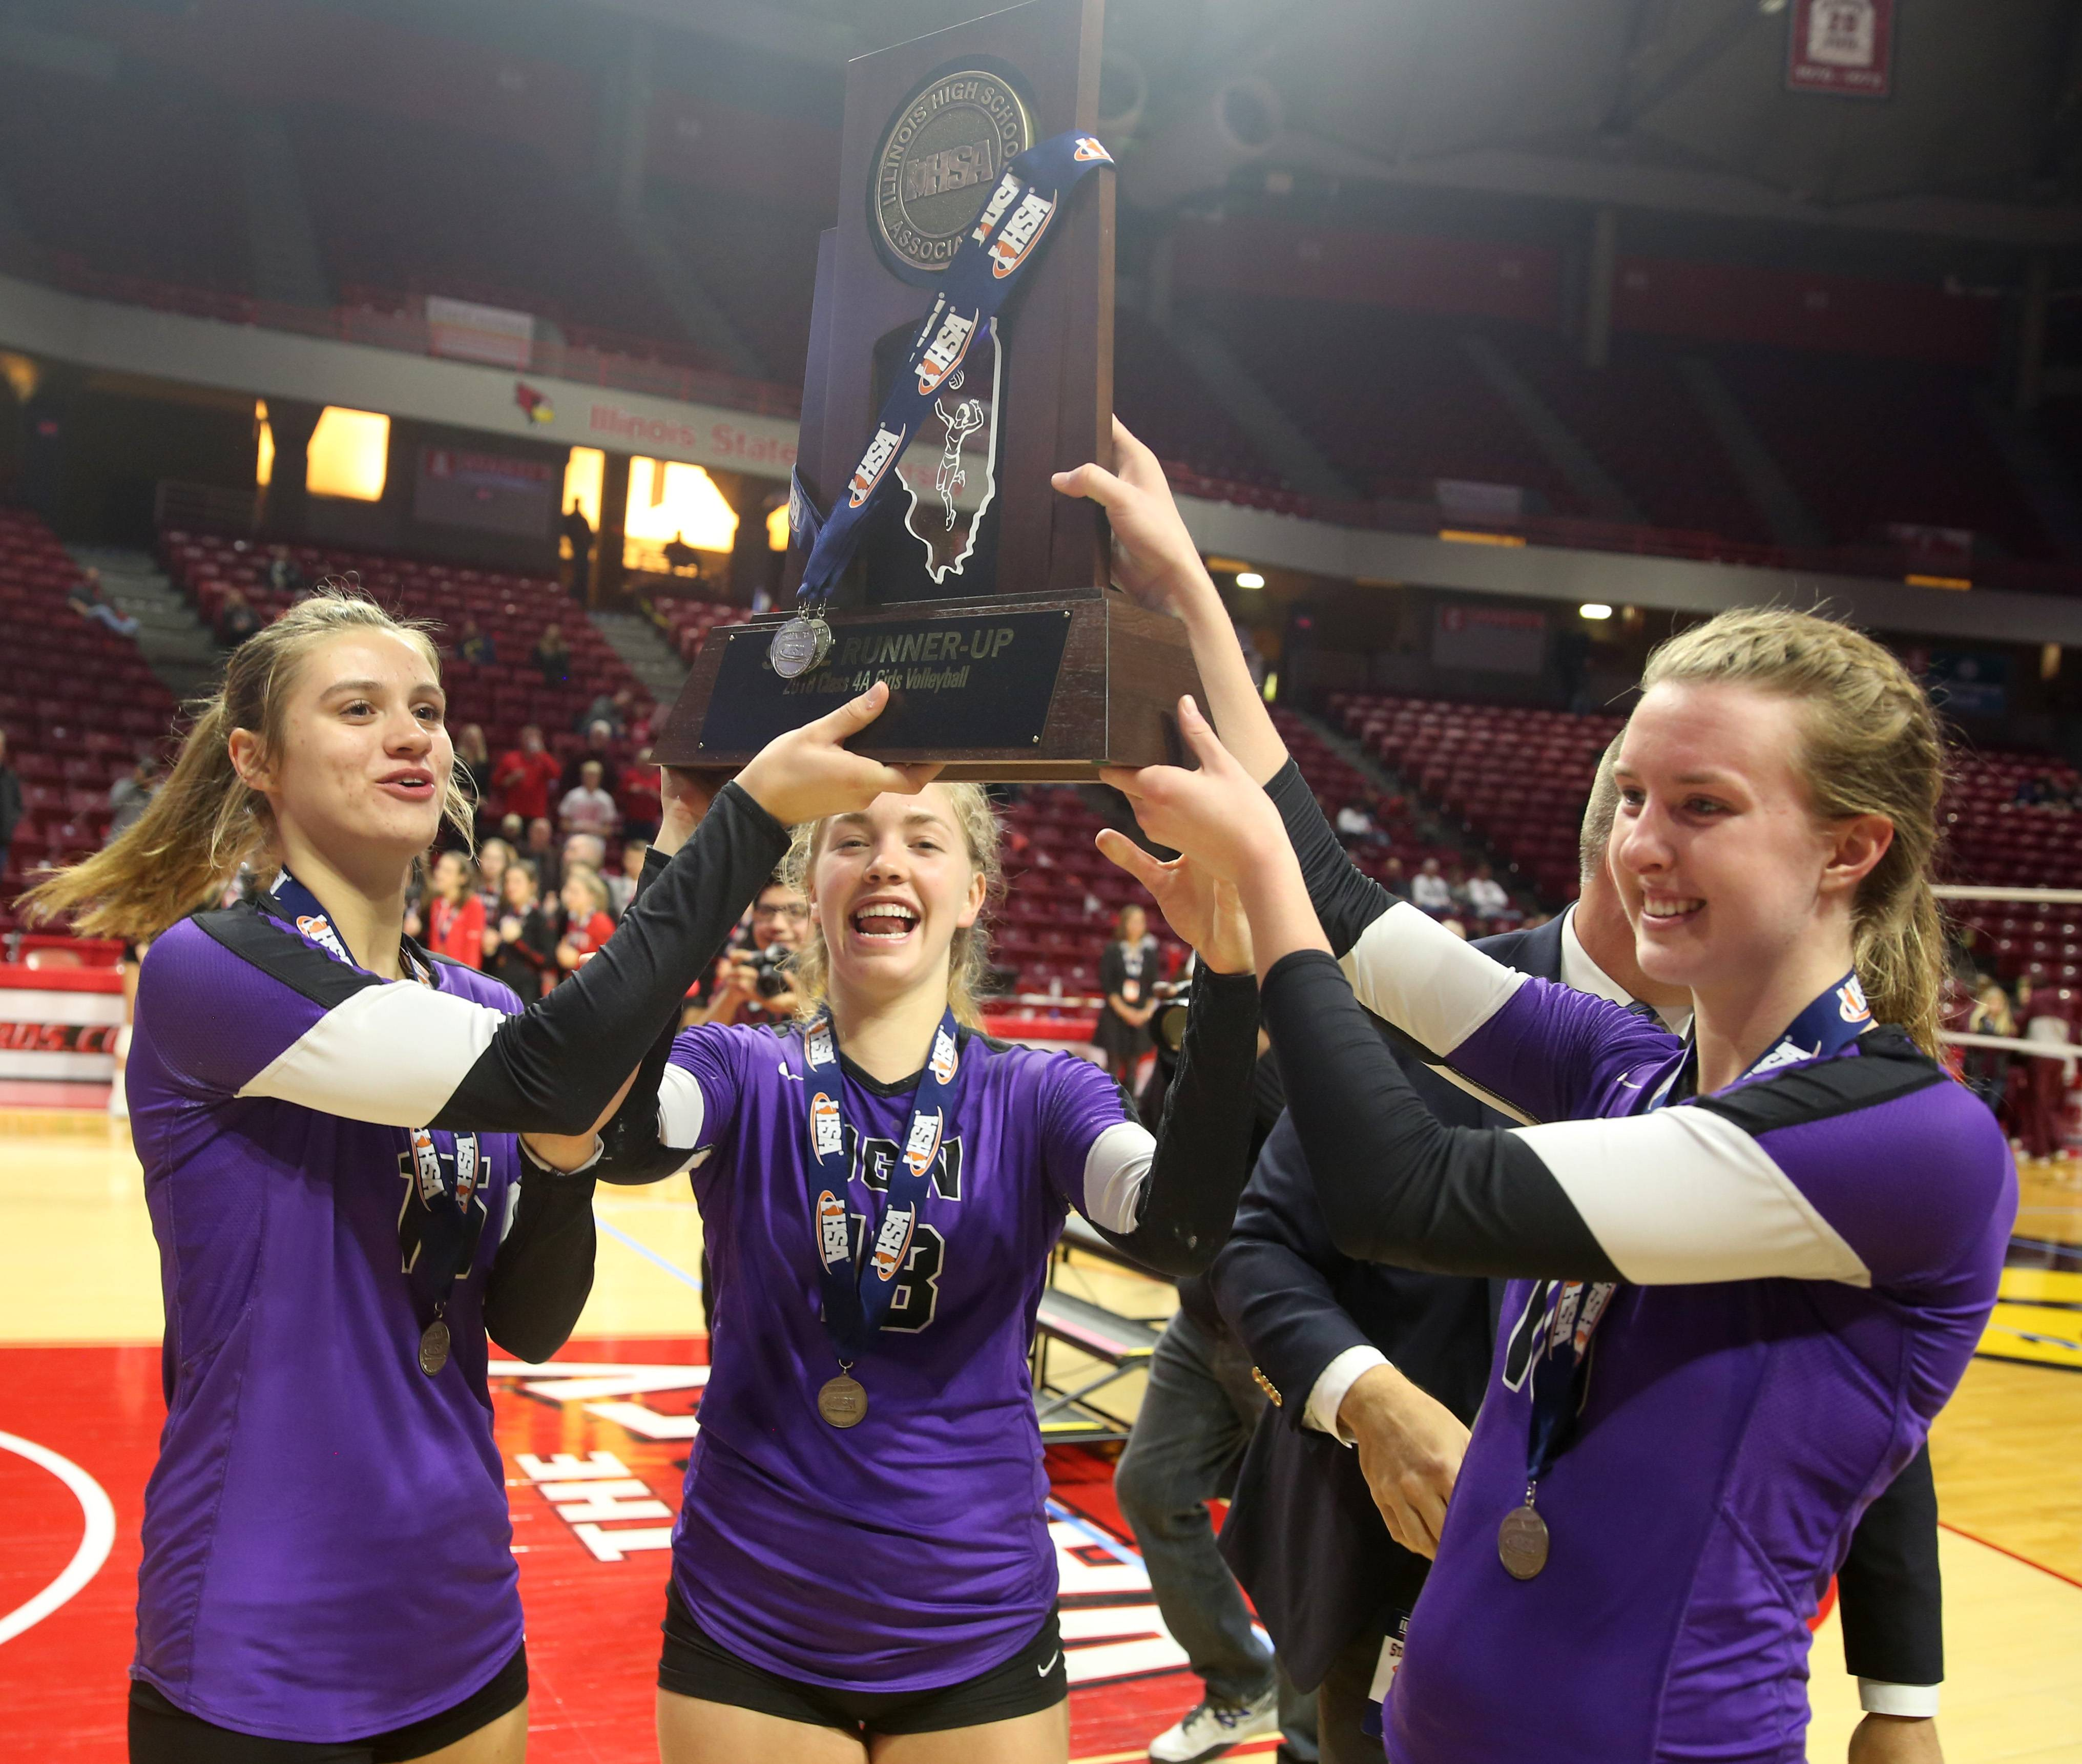 Downers Grove North players, from left, Maddie Degiorgio, Elizabeth Dunlap and Margaret Mahlke hoist their hardware during trophy presentations for the Class 4A state finals in girls volleyball on Saturday night at Redbird Arena on the campus of Illinois State University. The Trojans finished runners up to Marist.